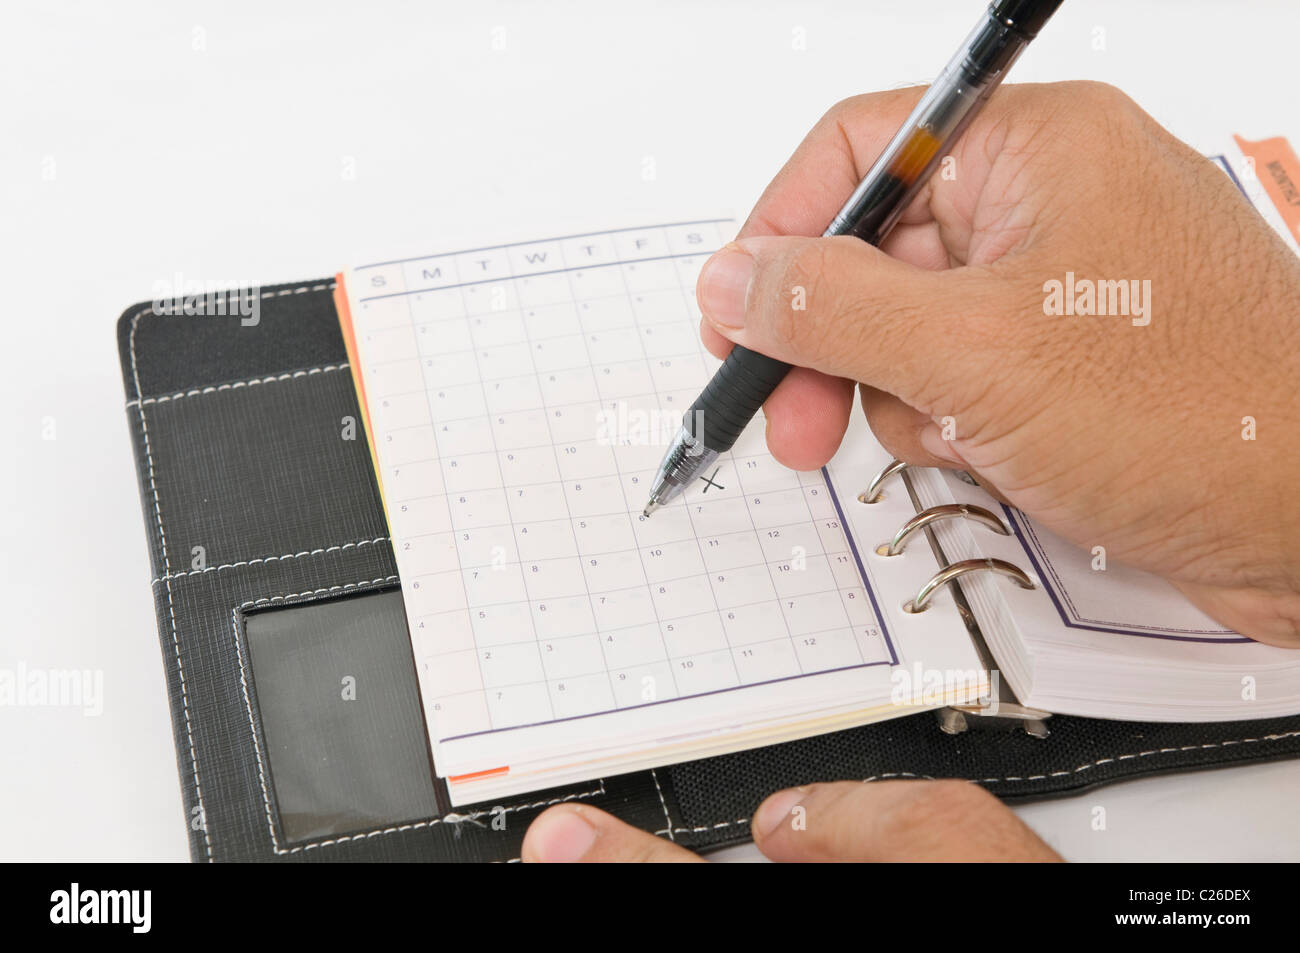 Hands holding a pen while marking the calender - Stock Image